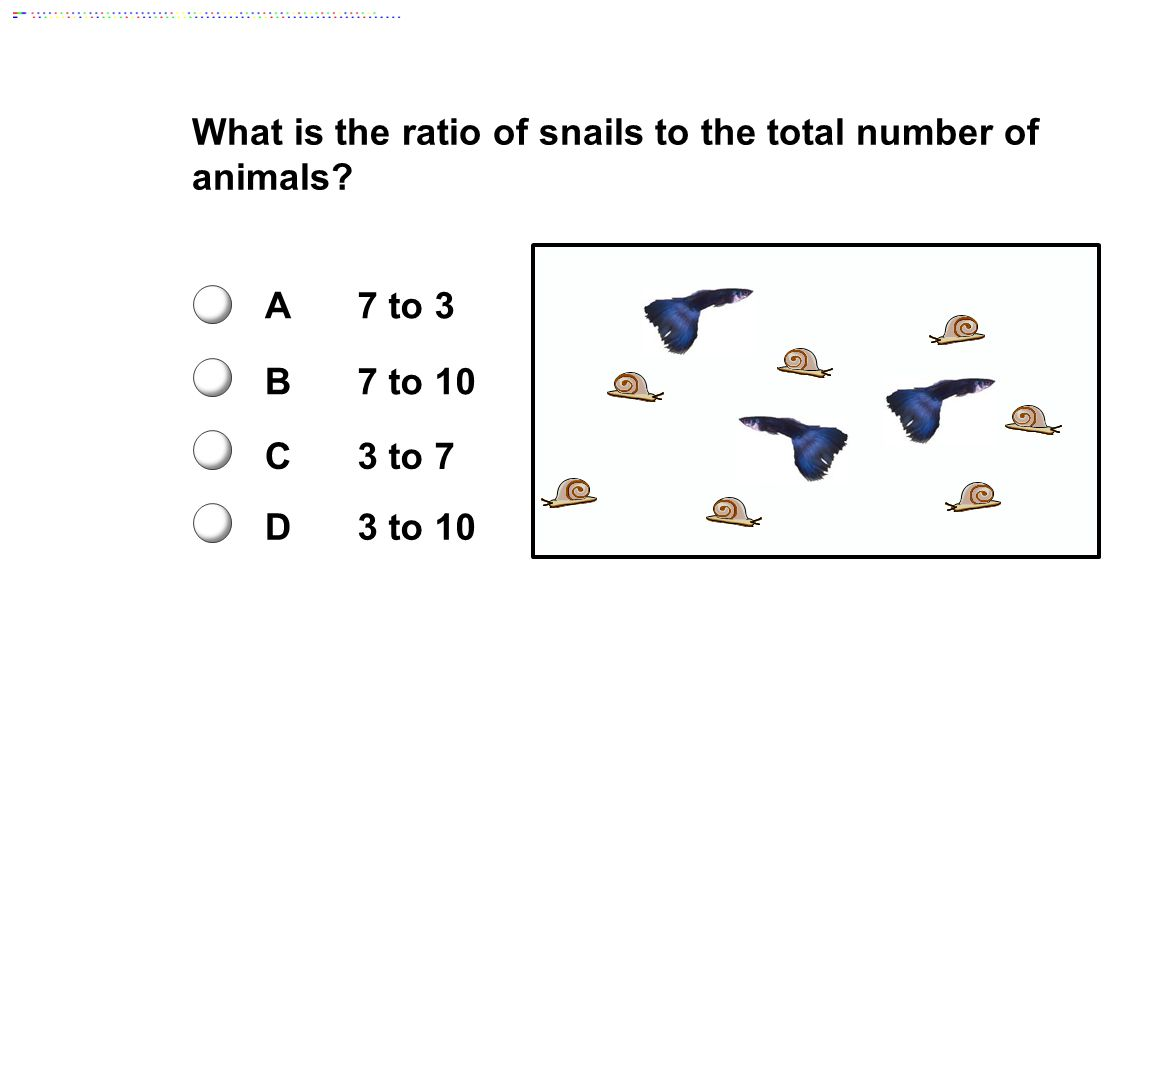 What is the ratio of snails to the total number of animals A7 to 3 B7 to 10 C3 to 7 D3 to 10